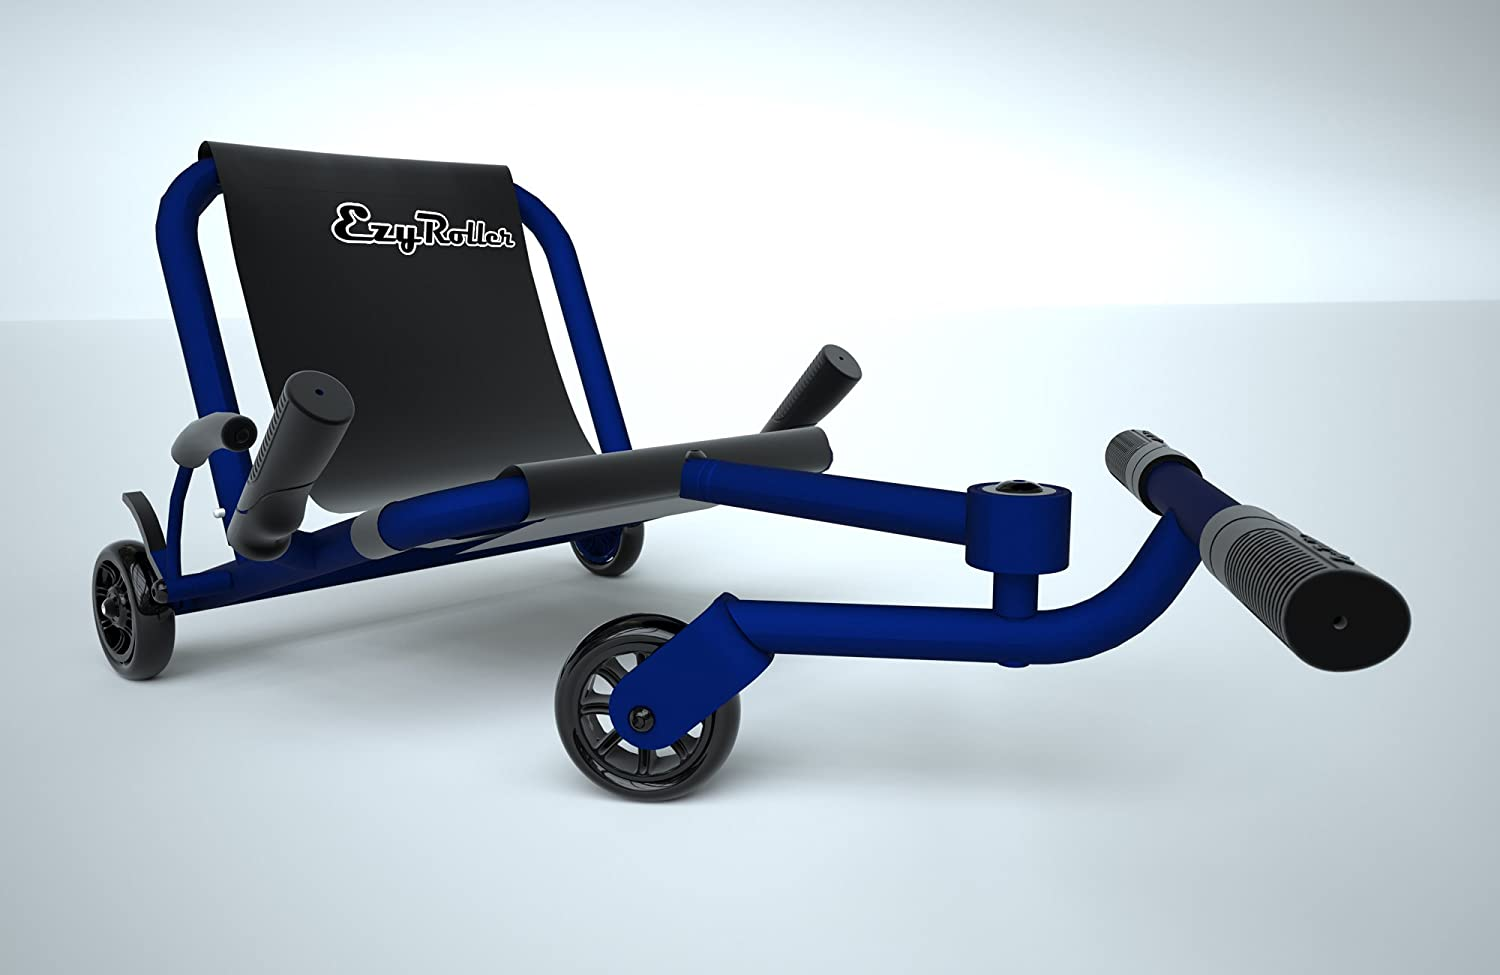 Ezyroller Ultimate Riding Machine - Special Limited Edition